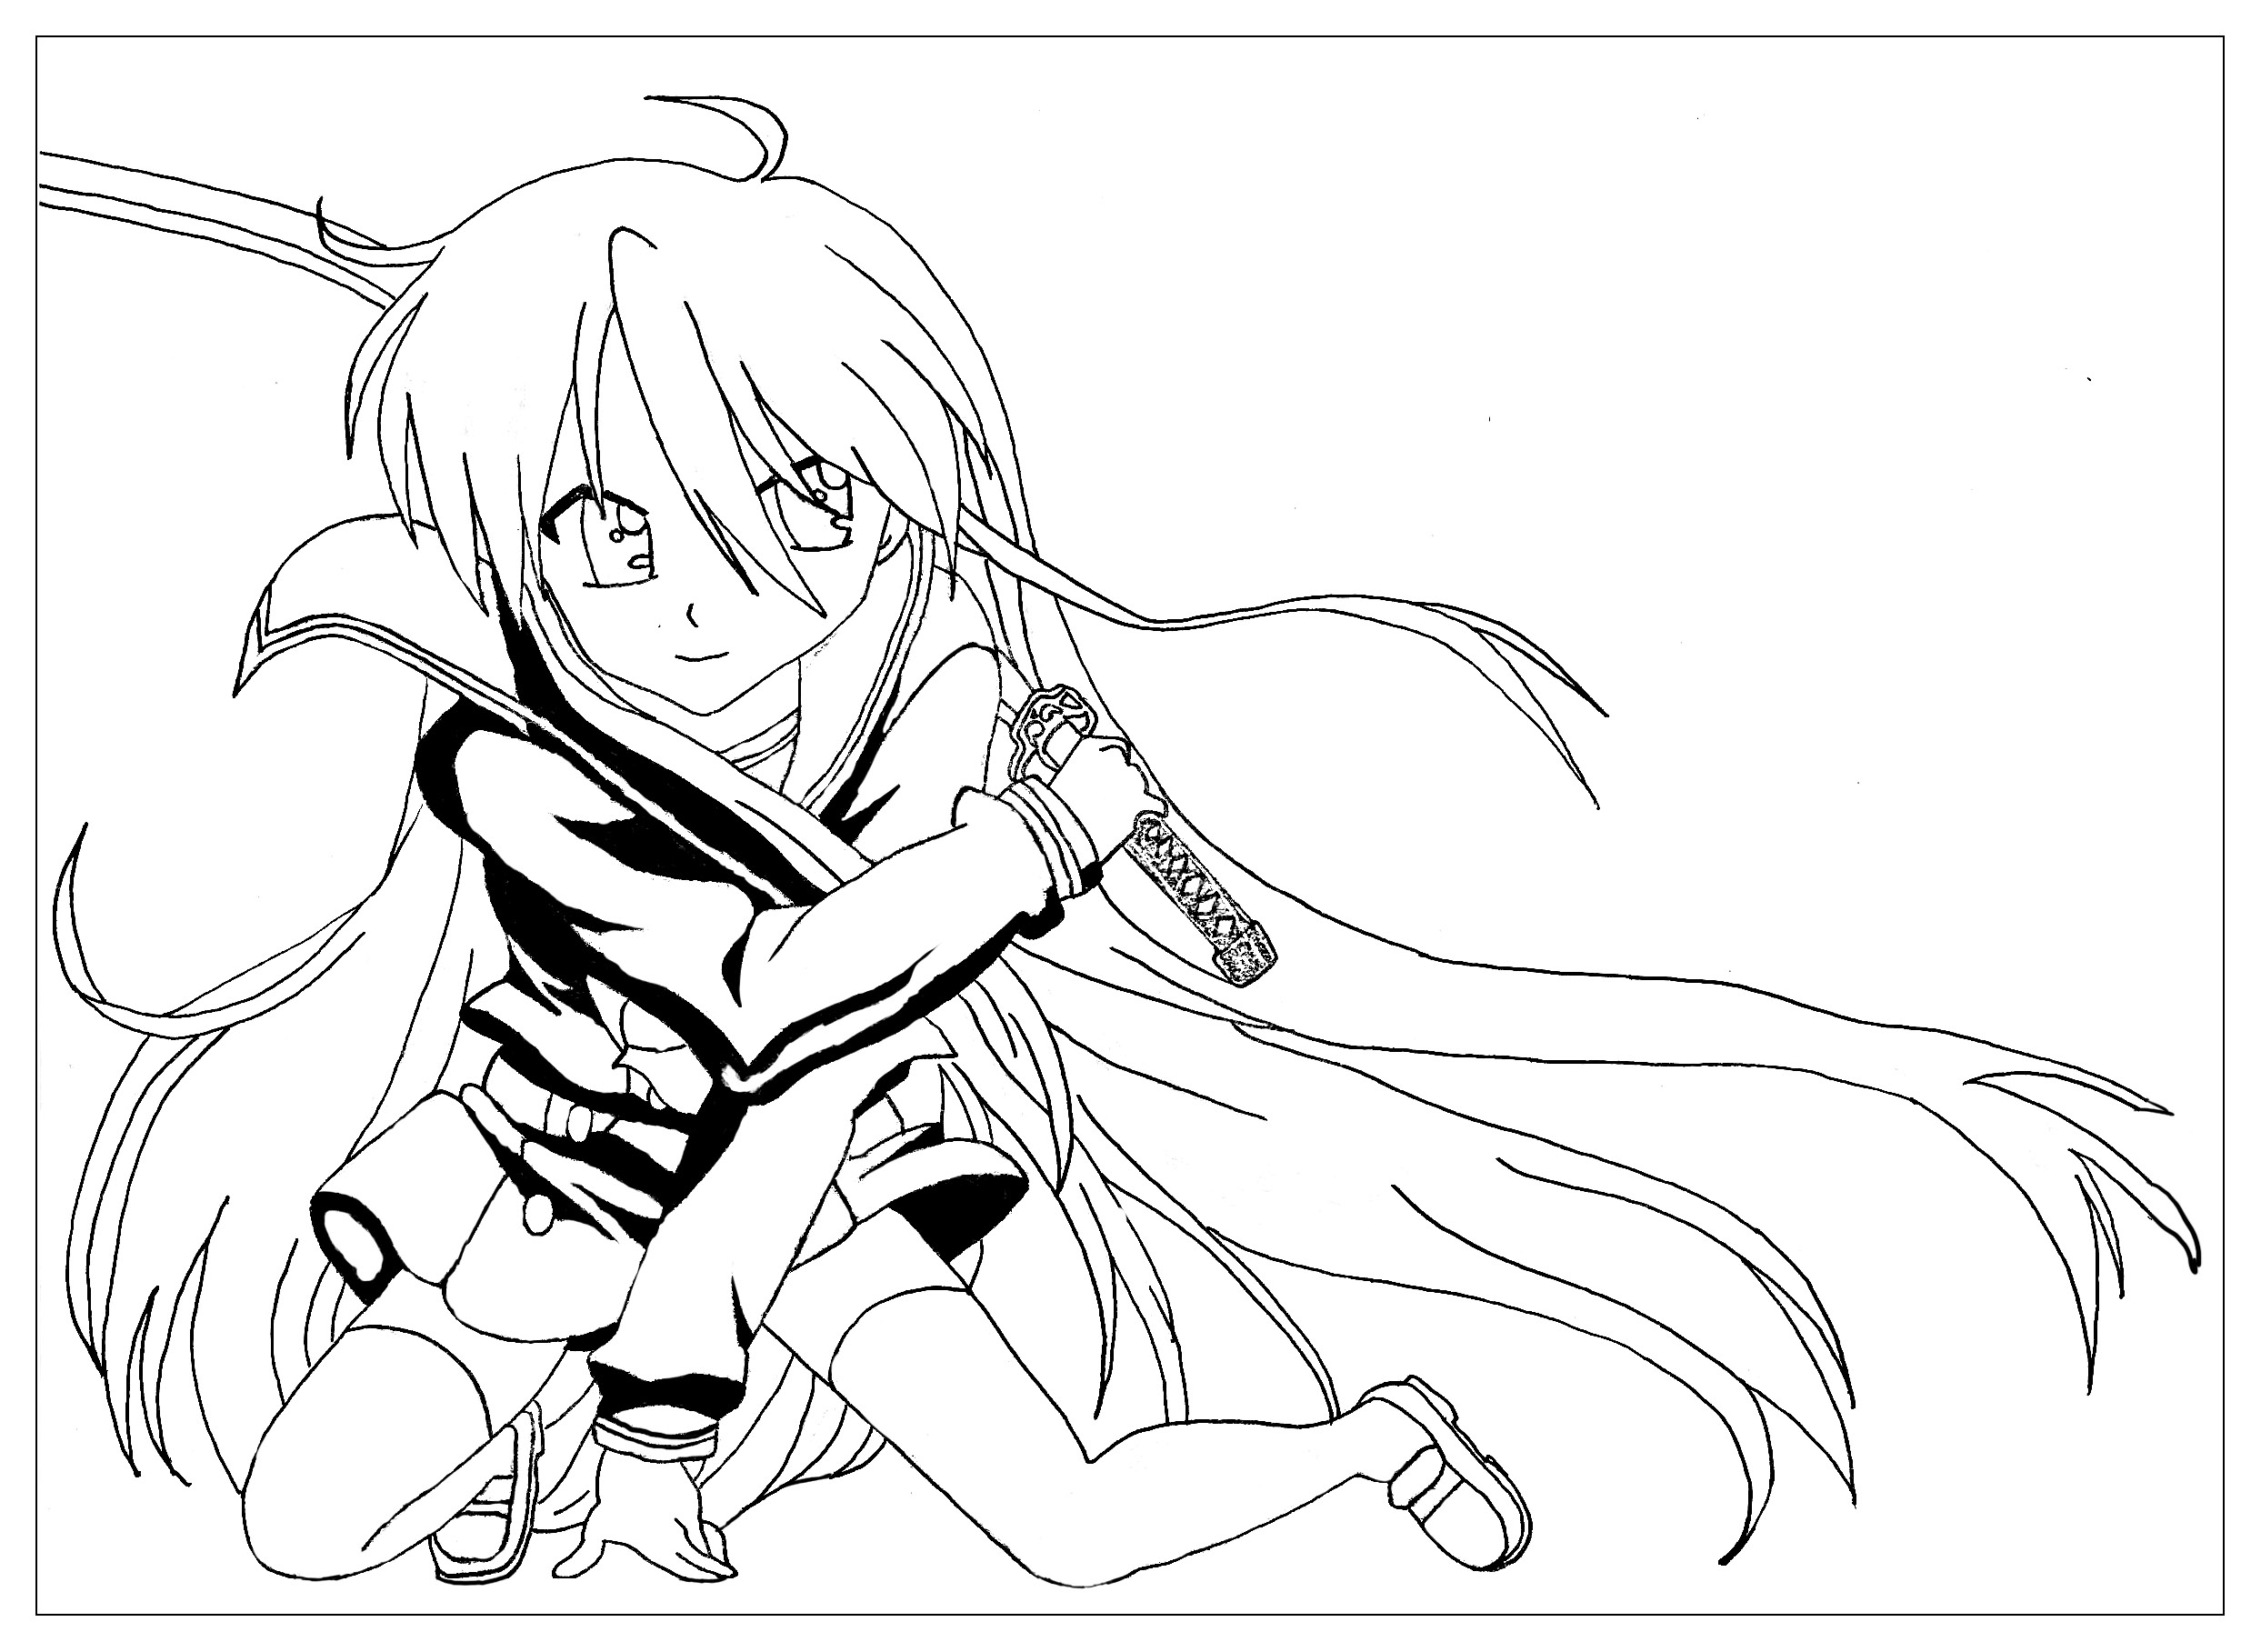 manga saber warrior by krissy krissy coloring pages for